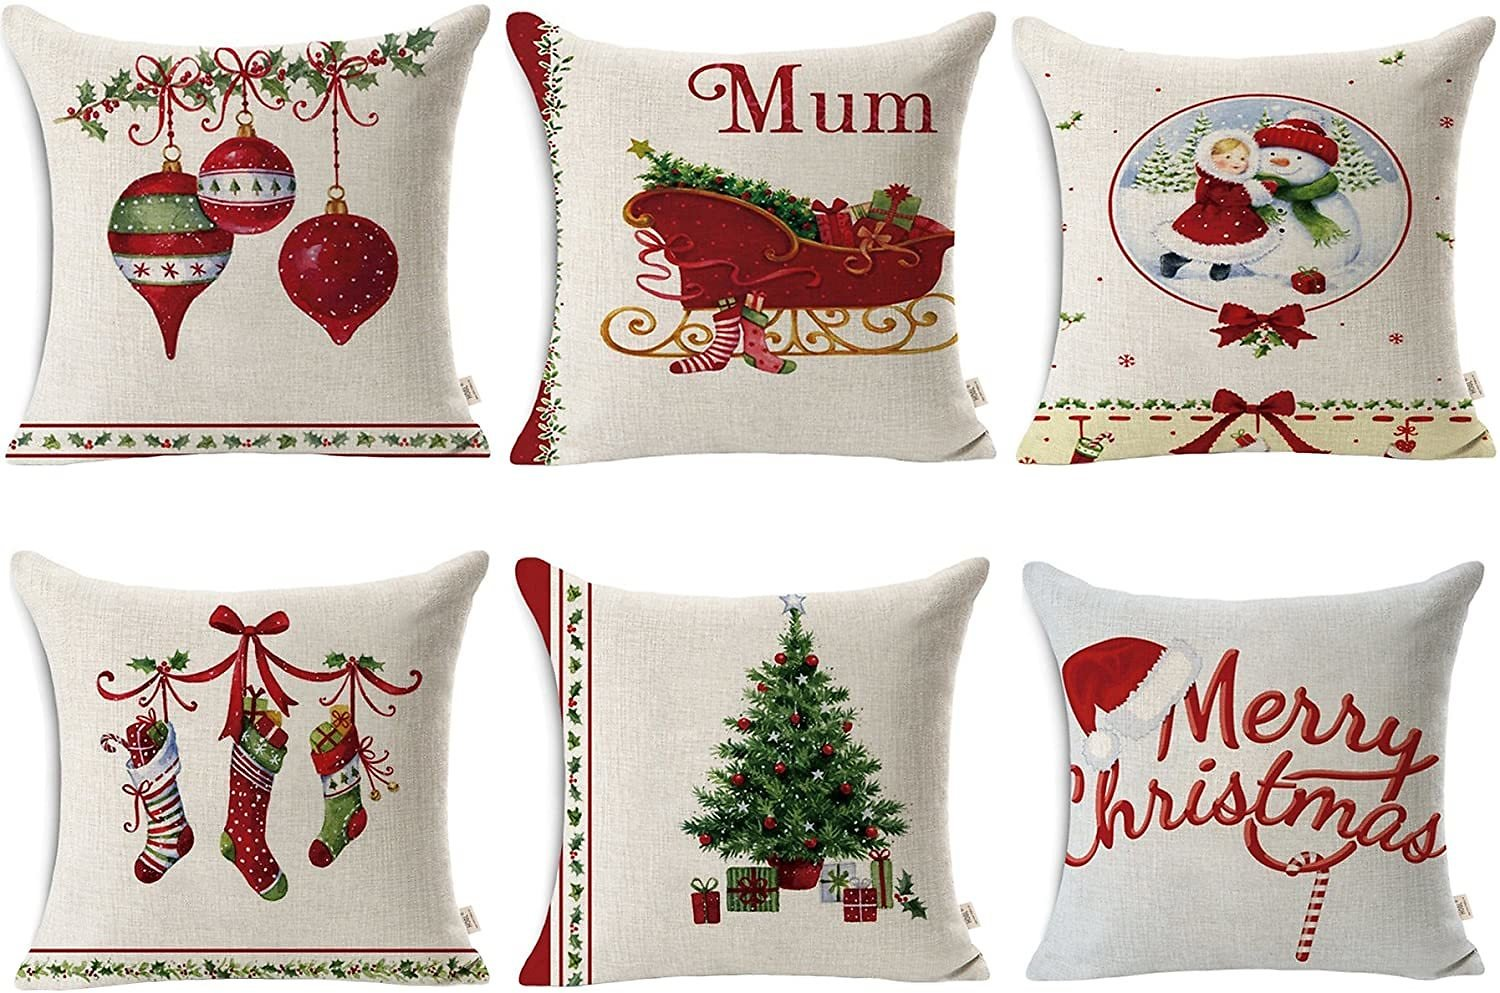 HOSL SD40 Christmas Pillow Covers 18 X 18 Merry Christmas Decorations Christmas Series Blend Linen Throw Pillow Case Decorative Cushion Cover Pillowcase Square 18